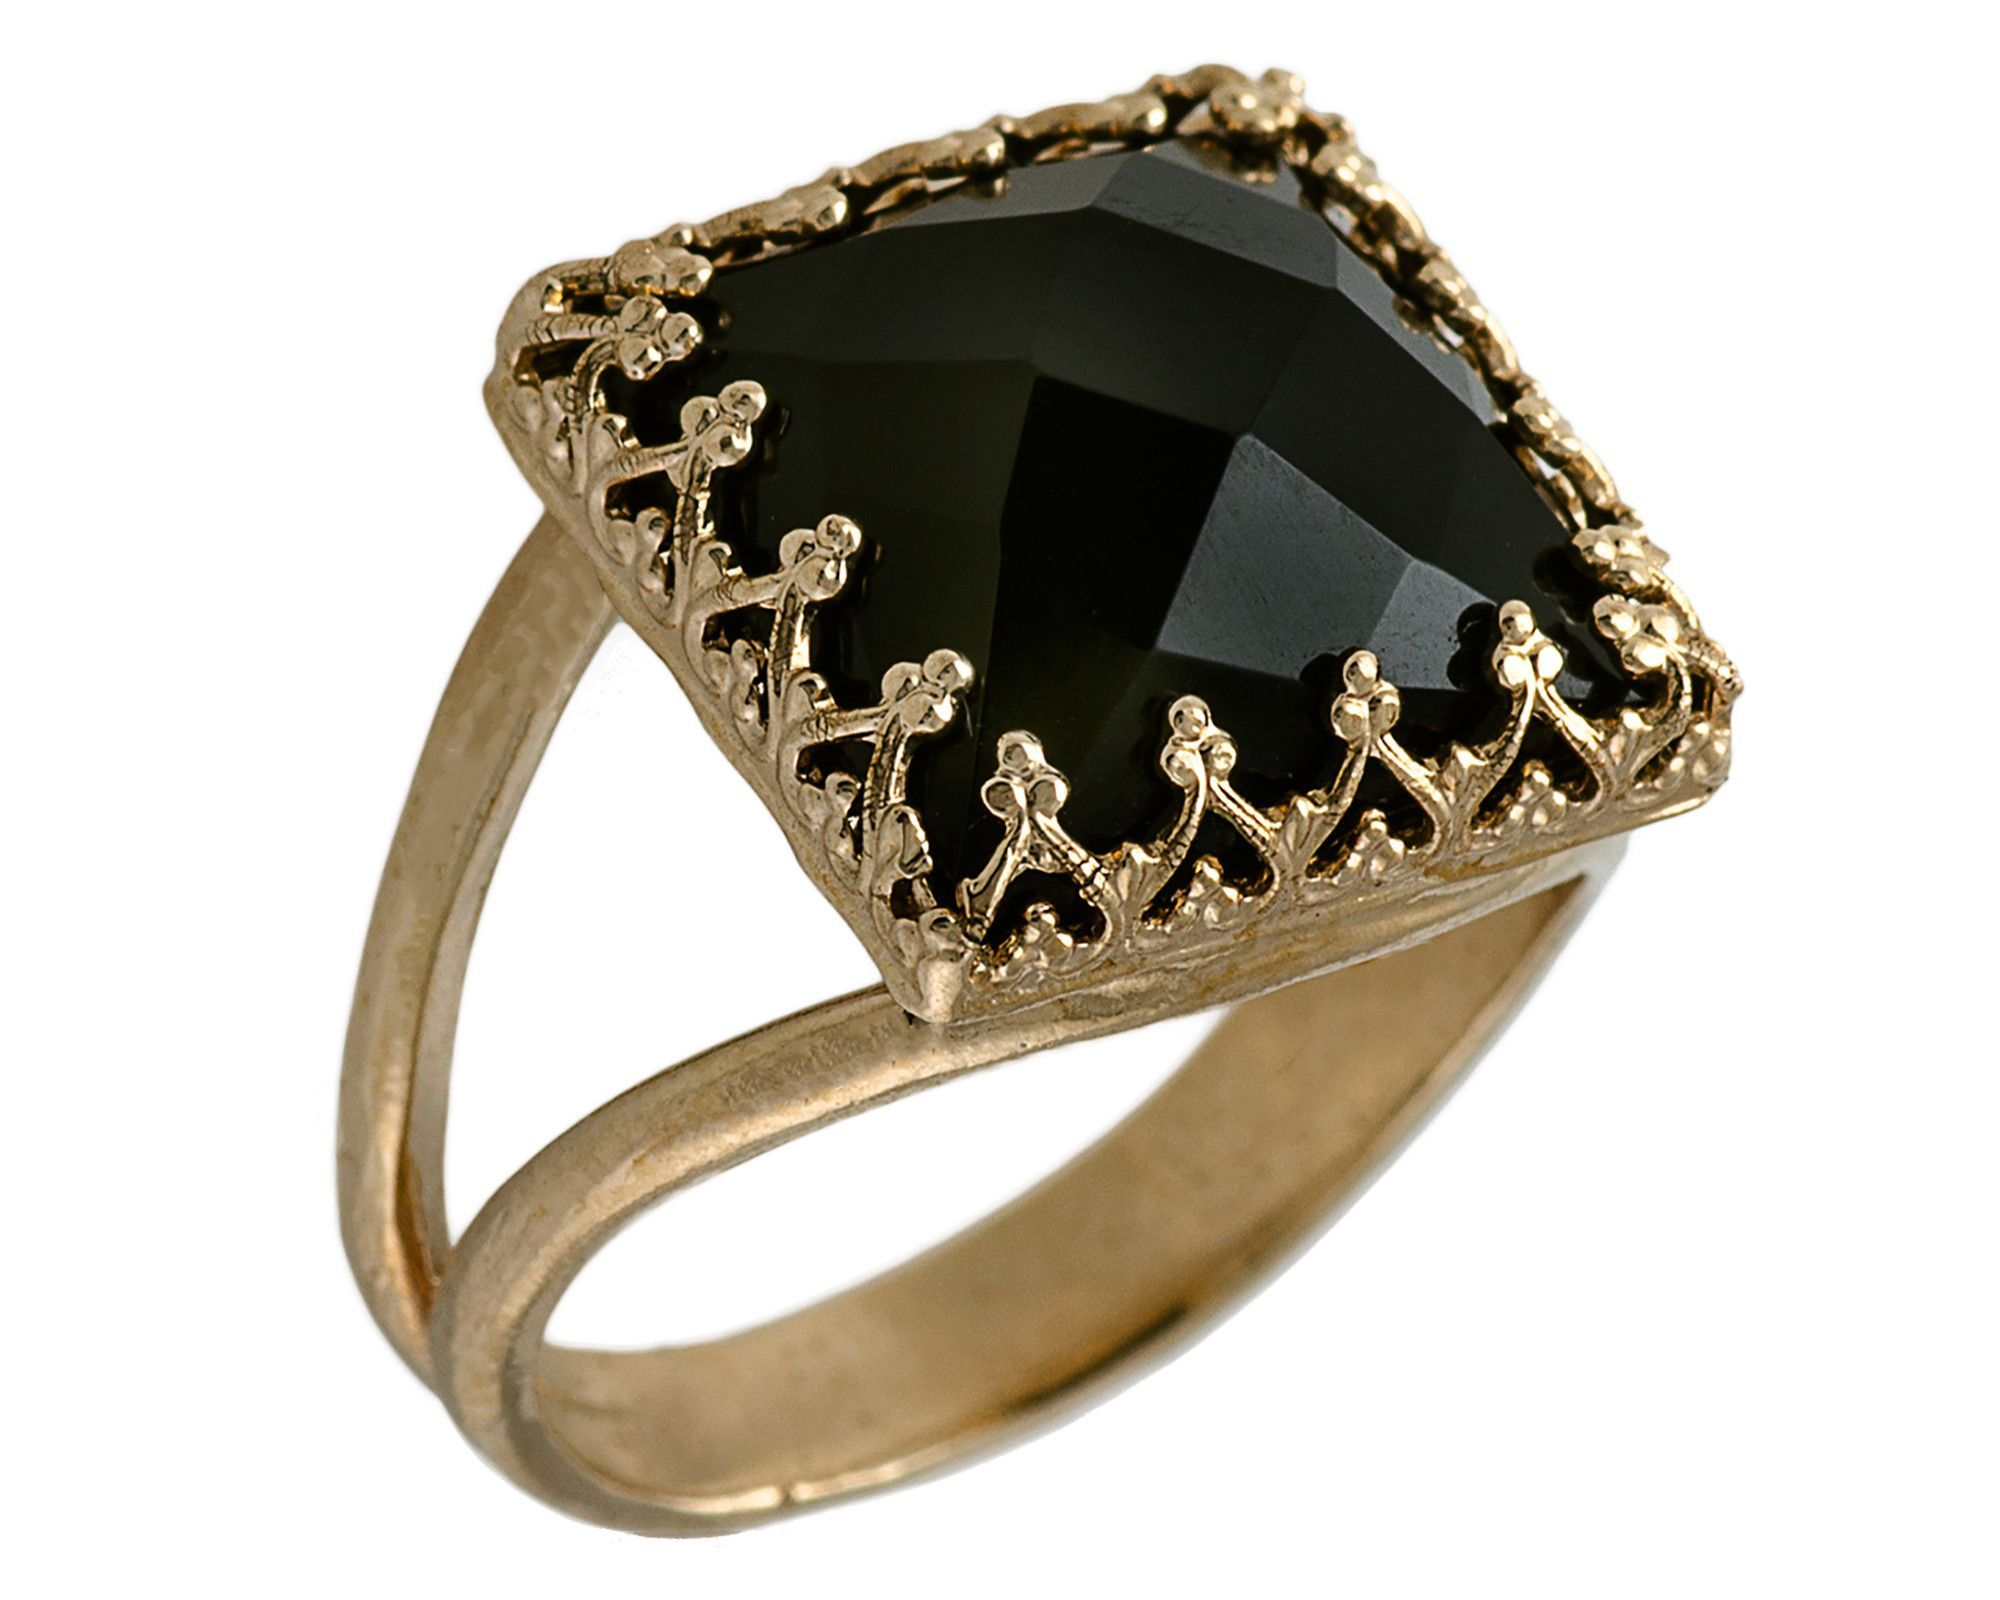 24k yellow gold filled Black Onyx Princesse Solitaire Anneaux